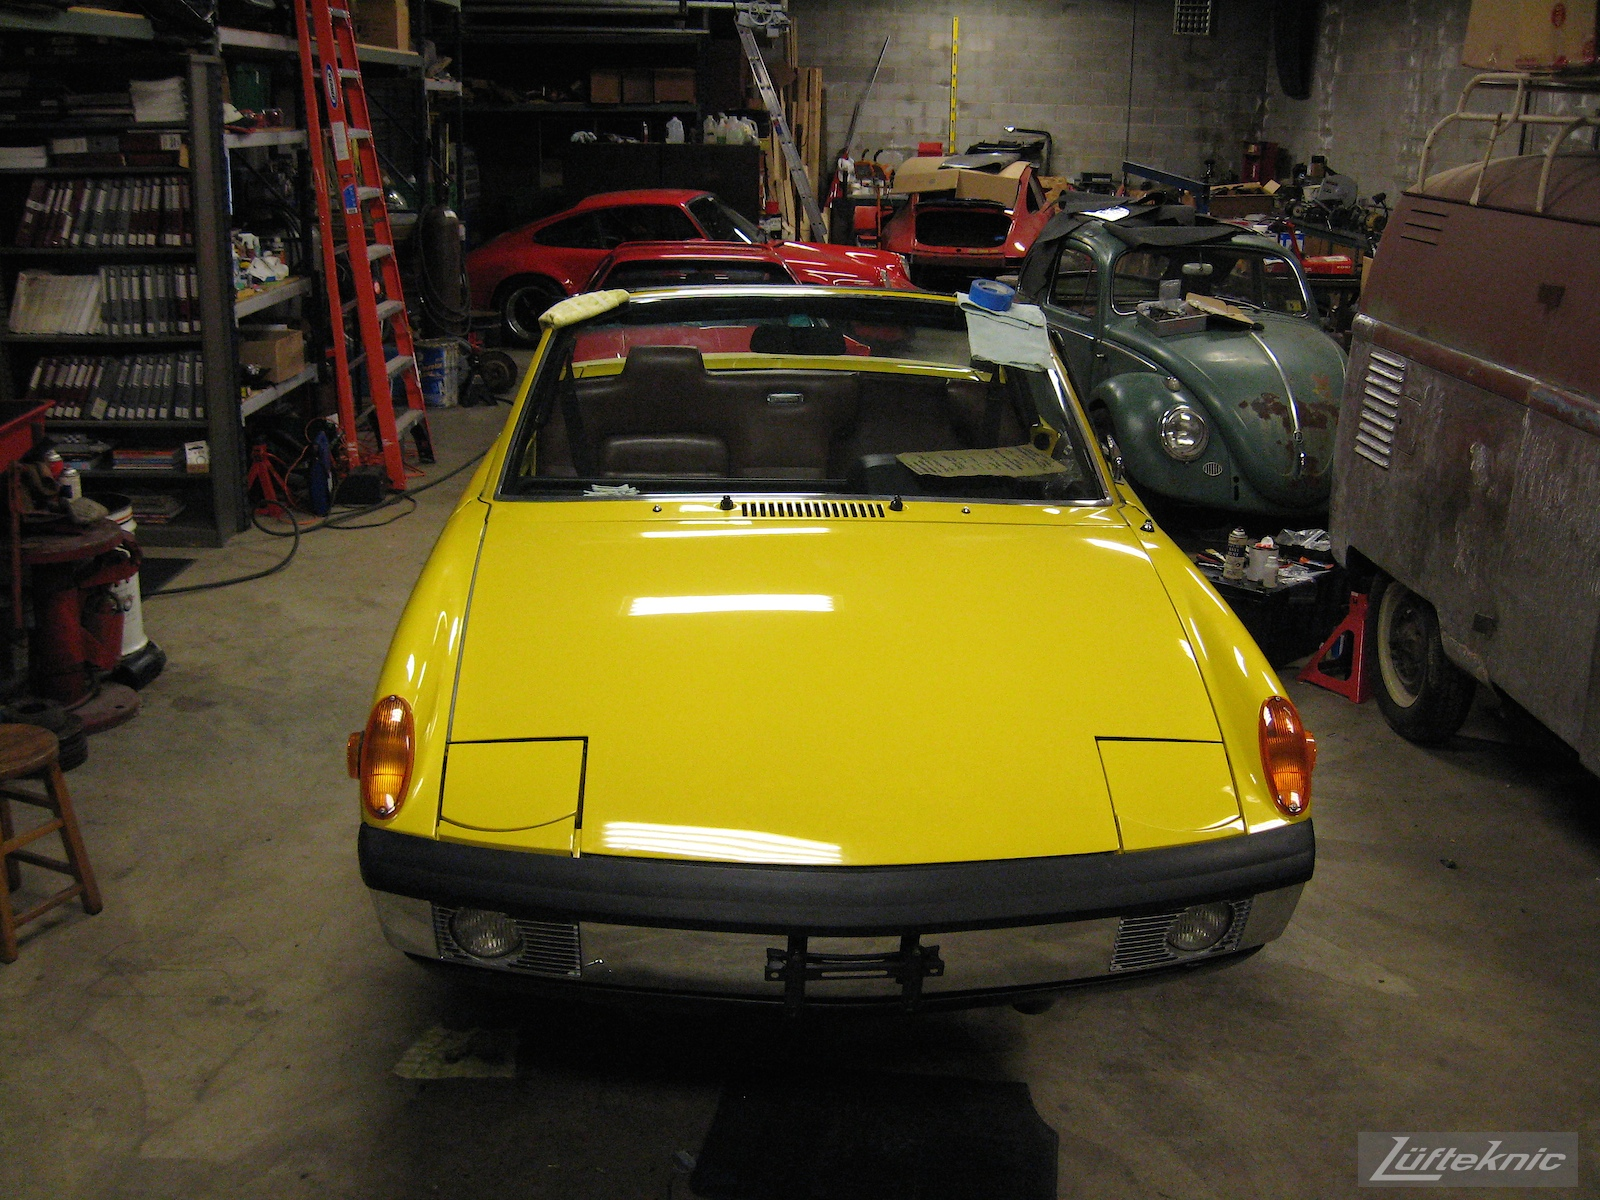 nearly done, hood installed while other projects sit around a restored yellow Porsche 914 at Lufteknic.